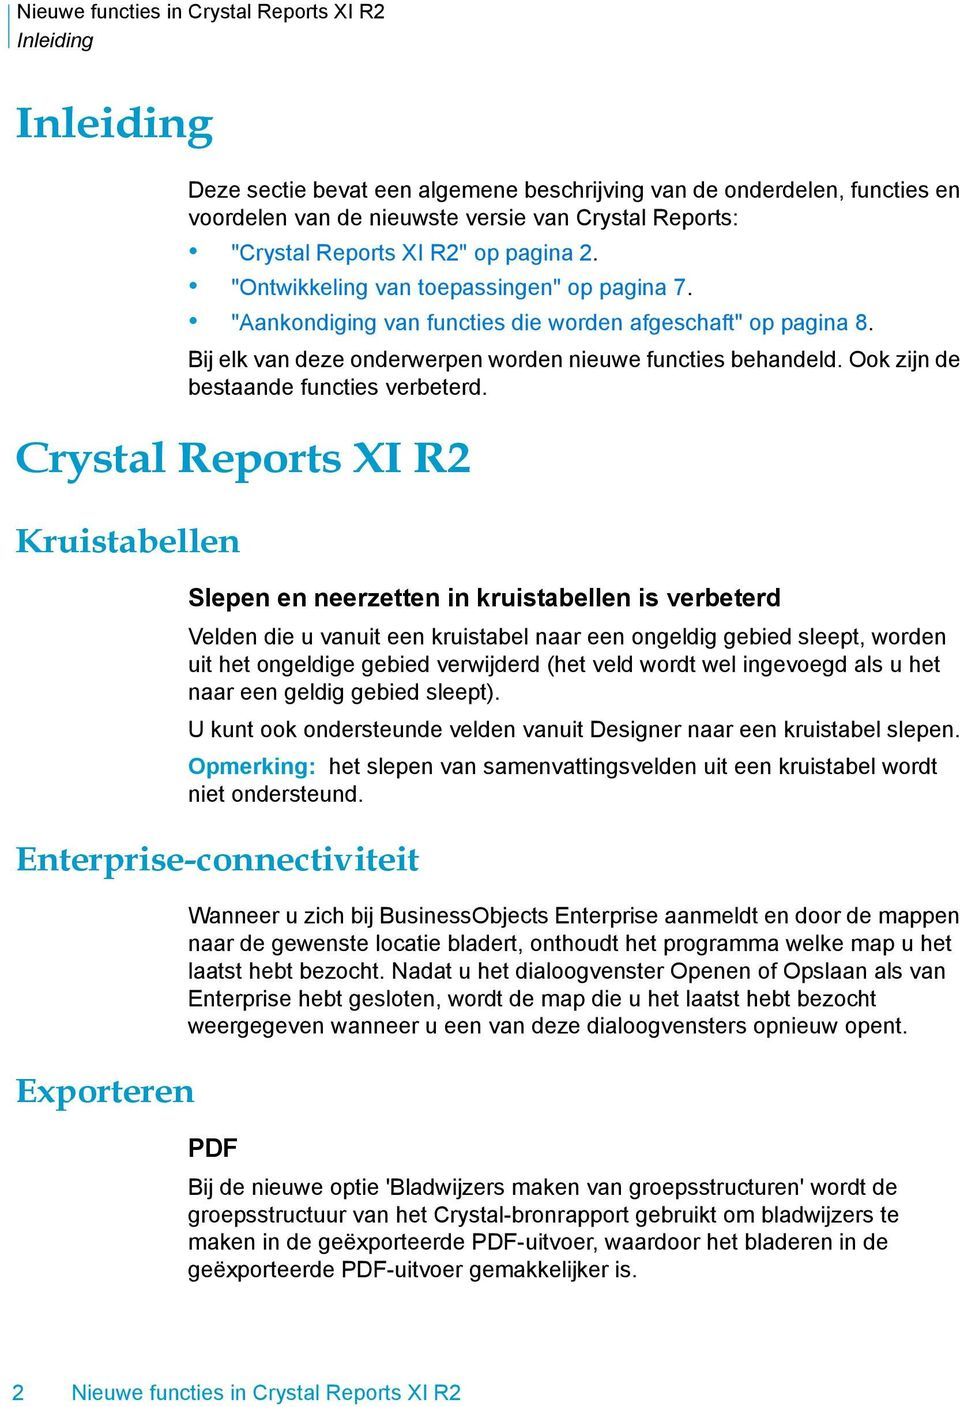 crystal reports xi r2 download free